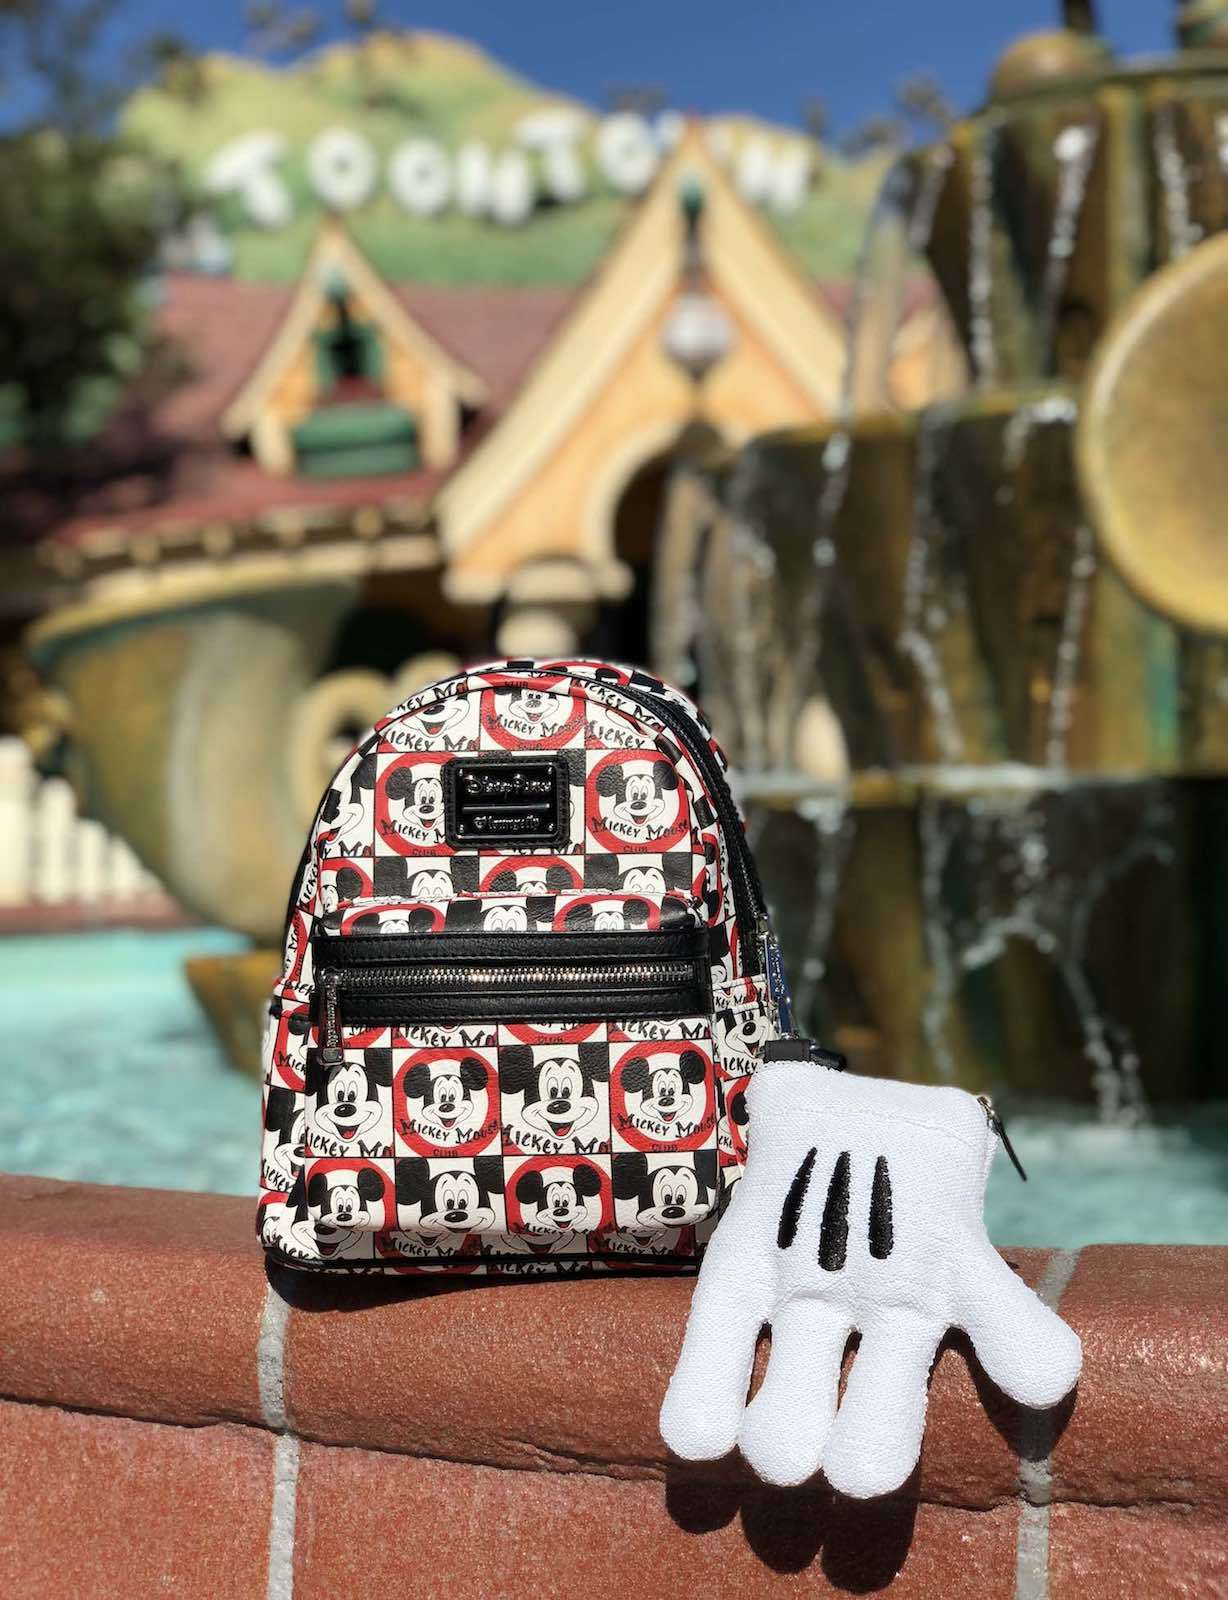 backpack and glove from the Mickey Mouse Club collection